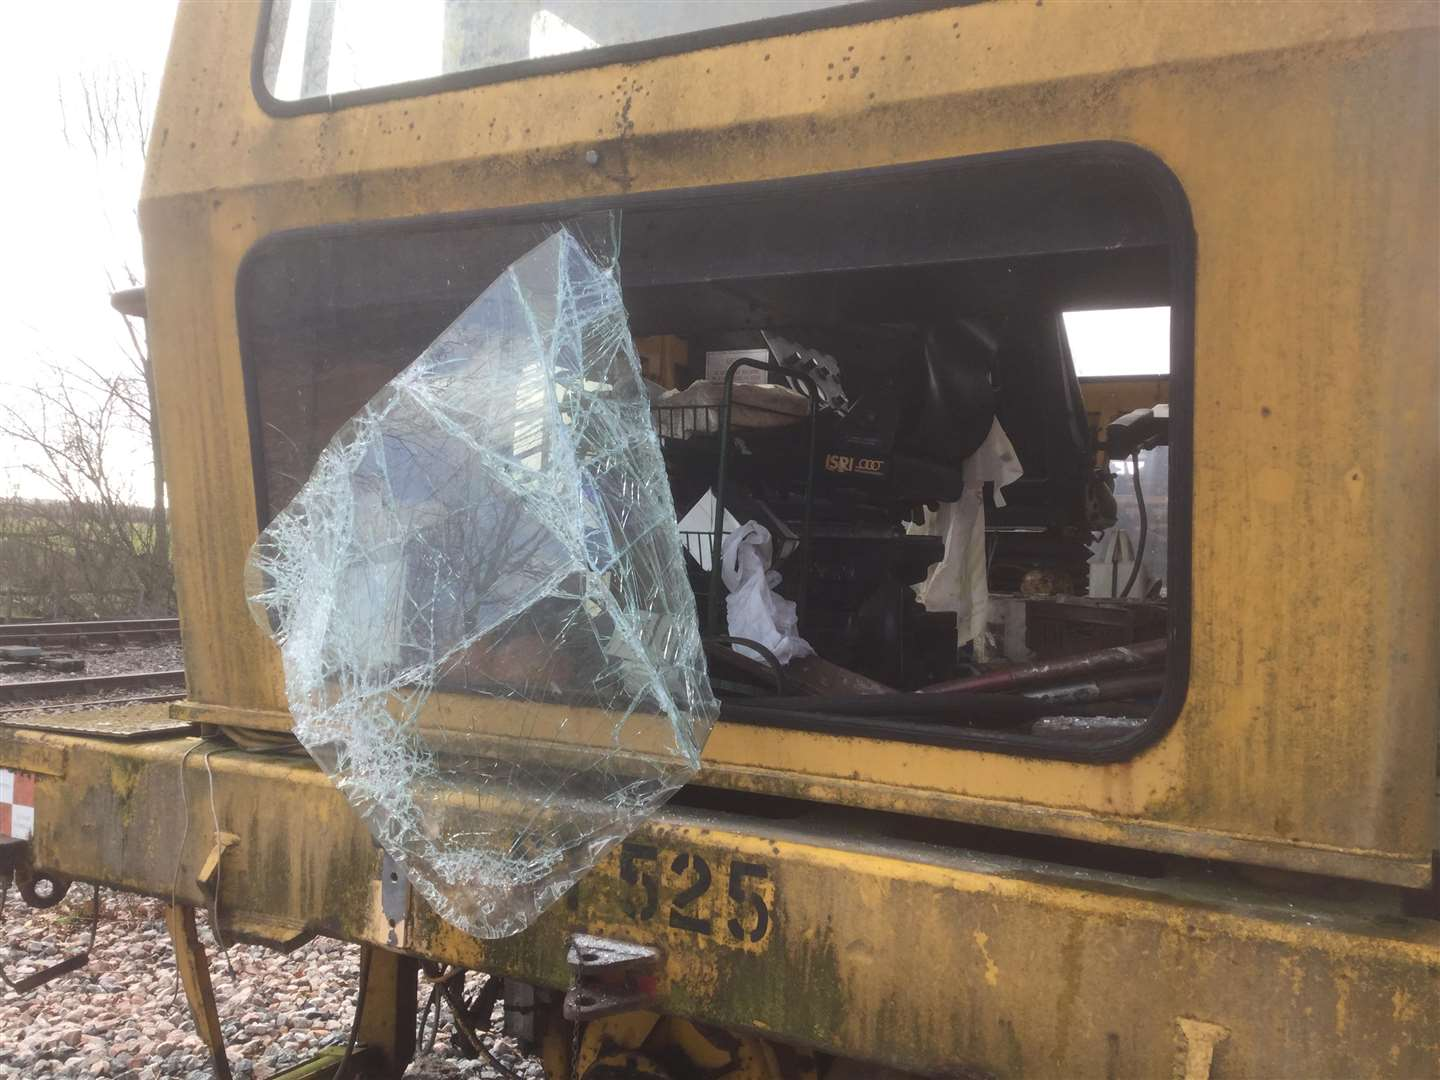 Damage to the tamping machine where glass covered by plastic was smashed to gain entry to the cab above